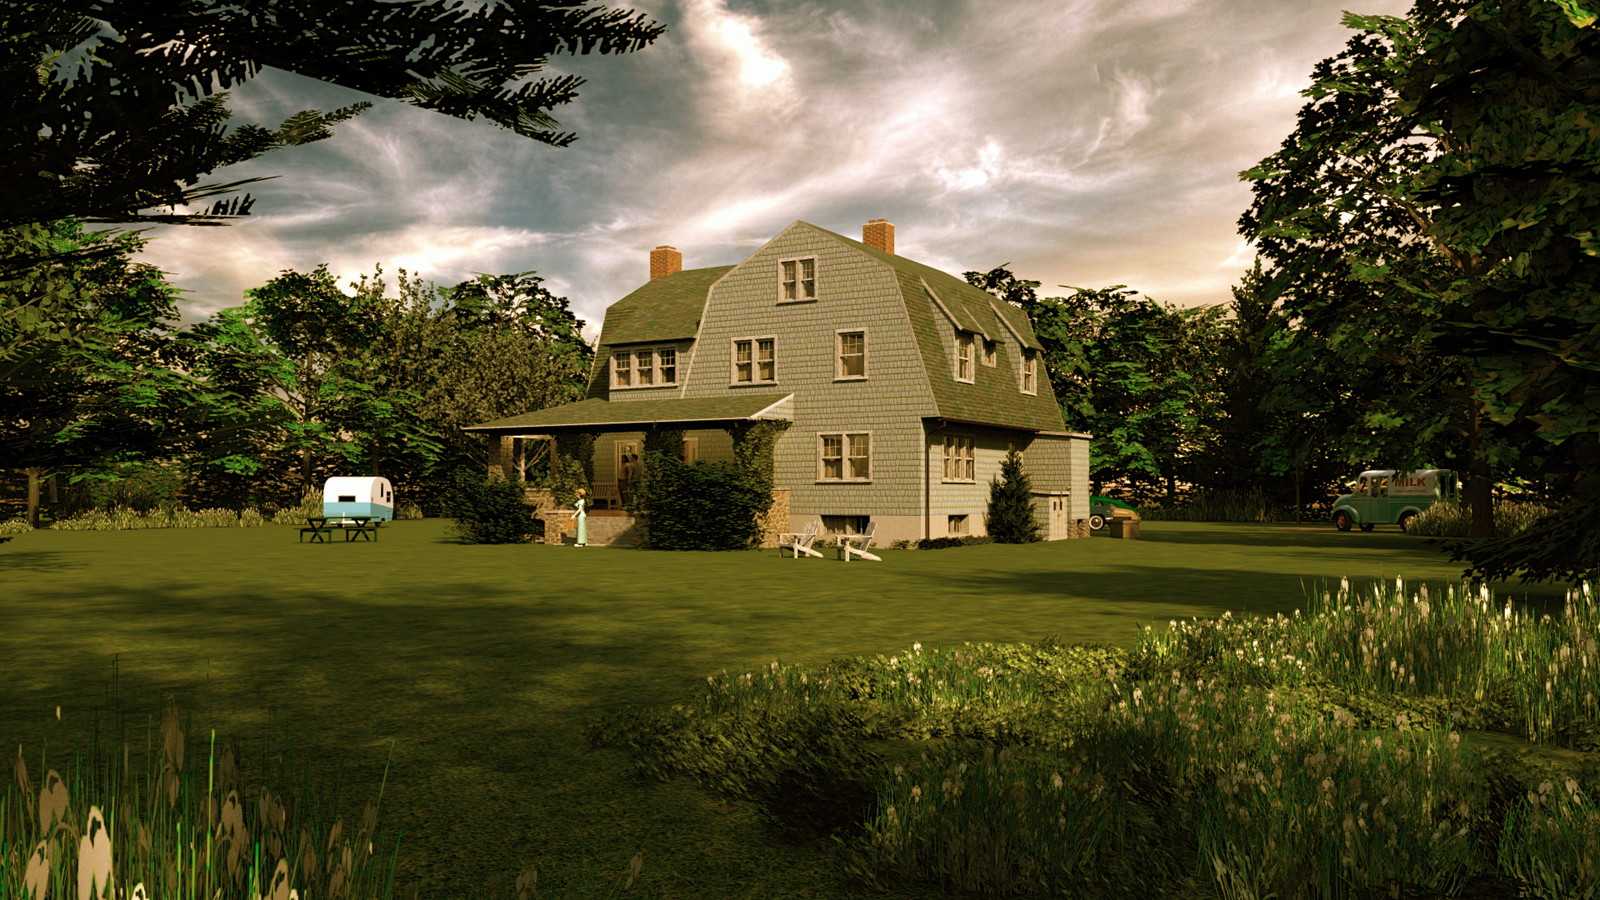 """""""Mason Farm - Homestead's Heart (Day)"""" Summer Sun Collection   15 Masonfarm HD1080 15d - iP Kodac  """"SketchUp to LayOut"""" The Mason Farm Renders for the launching of the new book """"SketchUp to LayOut"""" http://bit.ly/2j0d0Wh by MasterSketchup."""